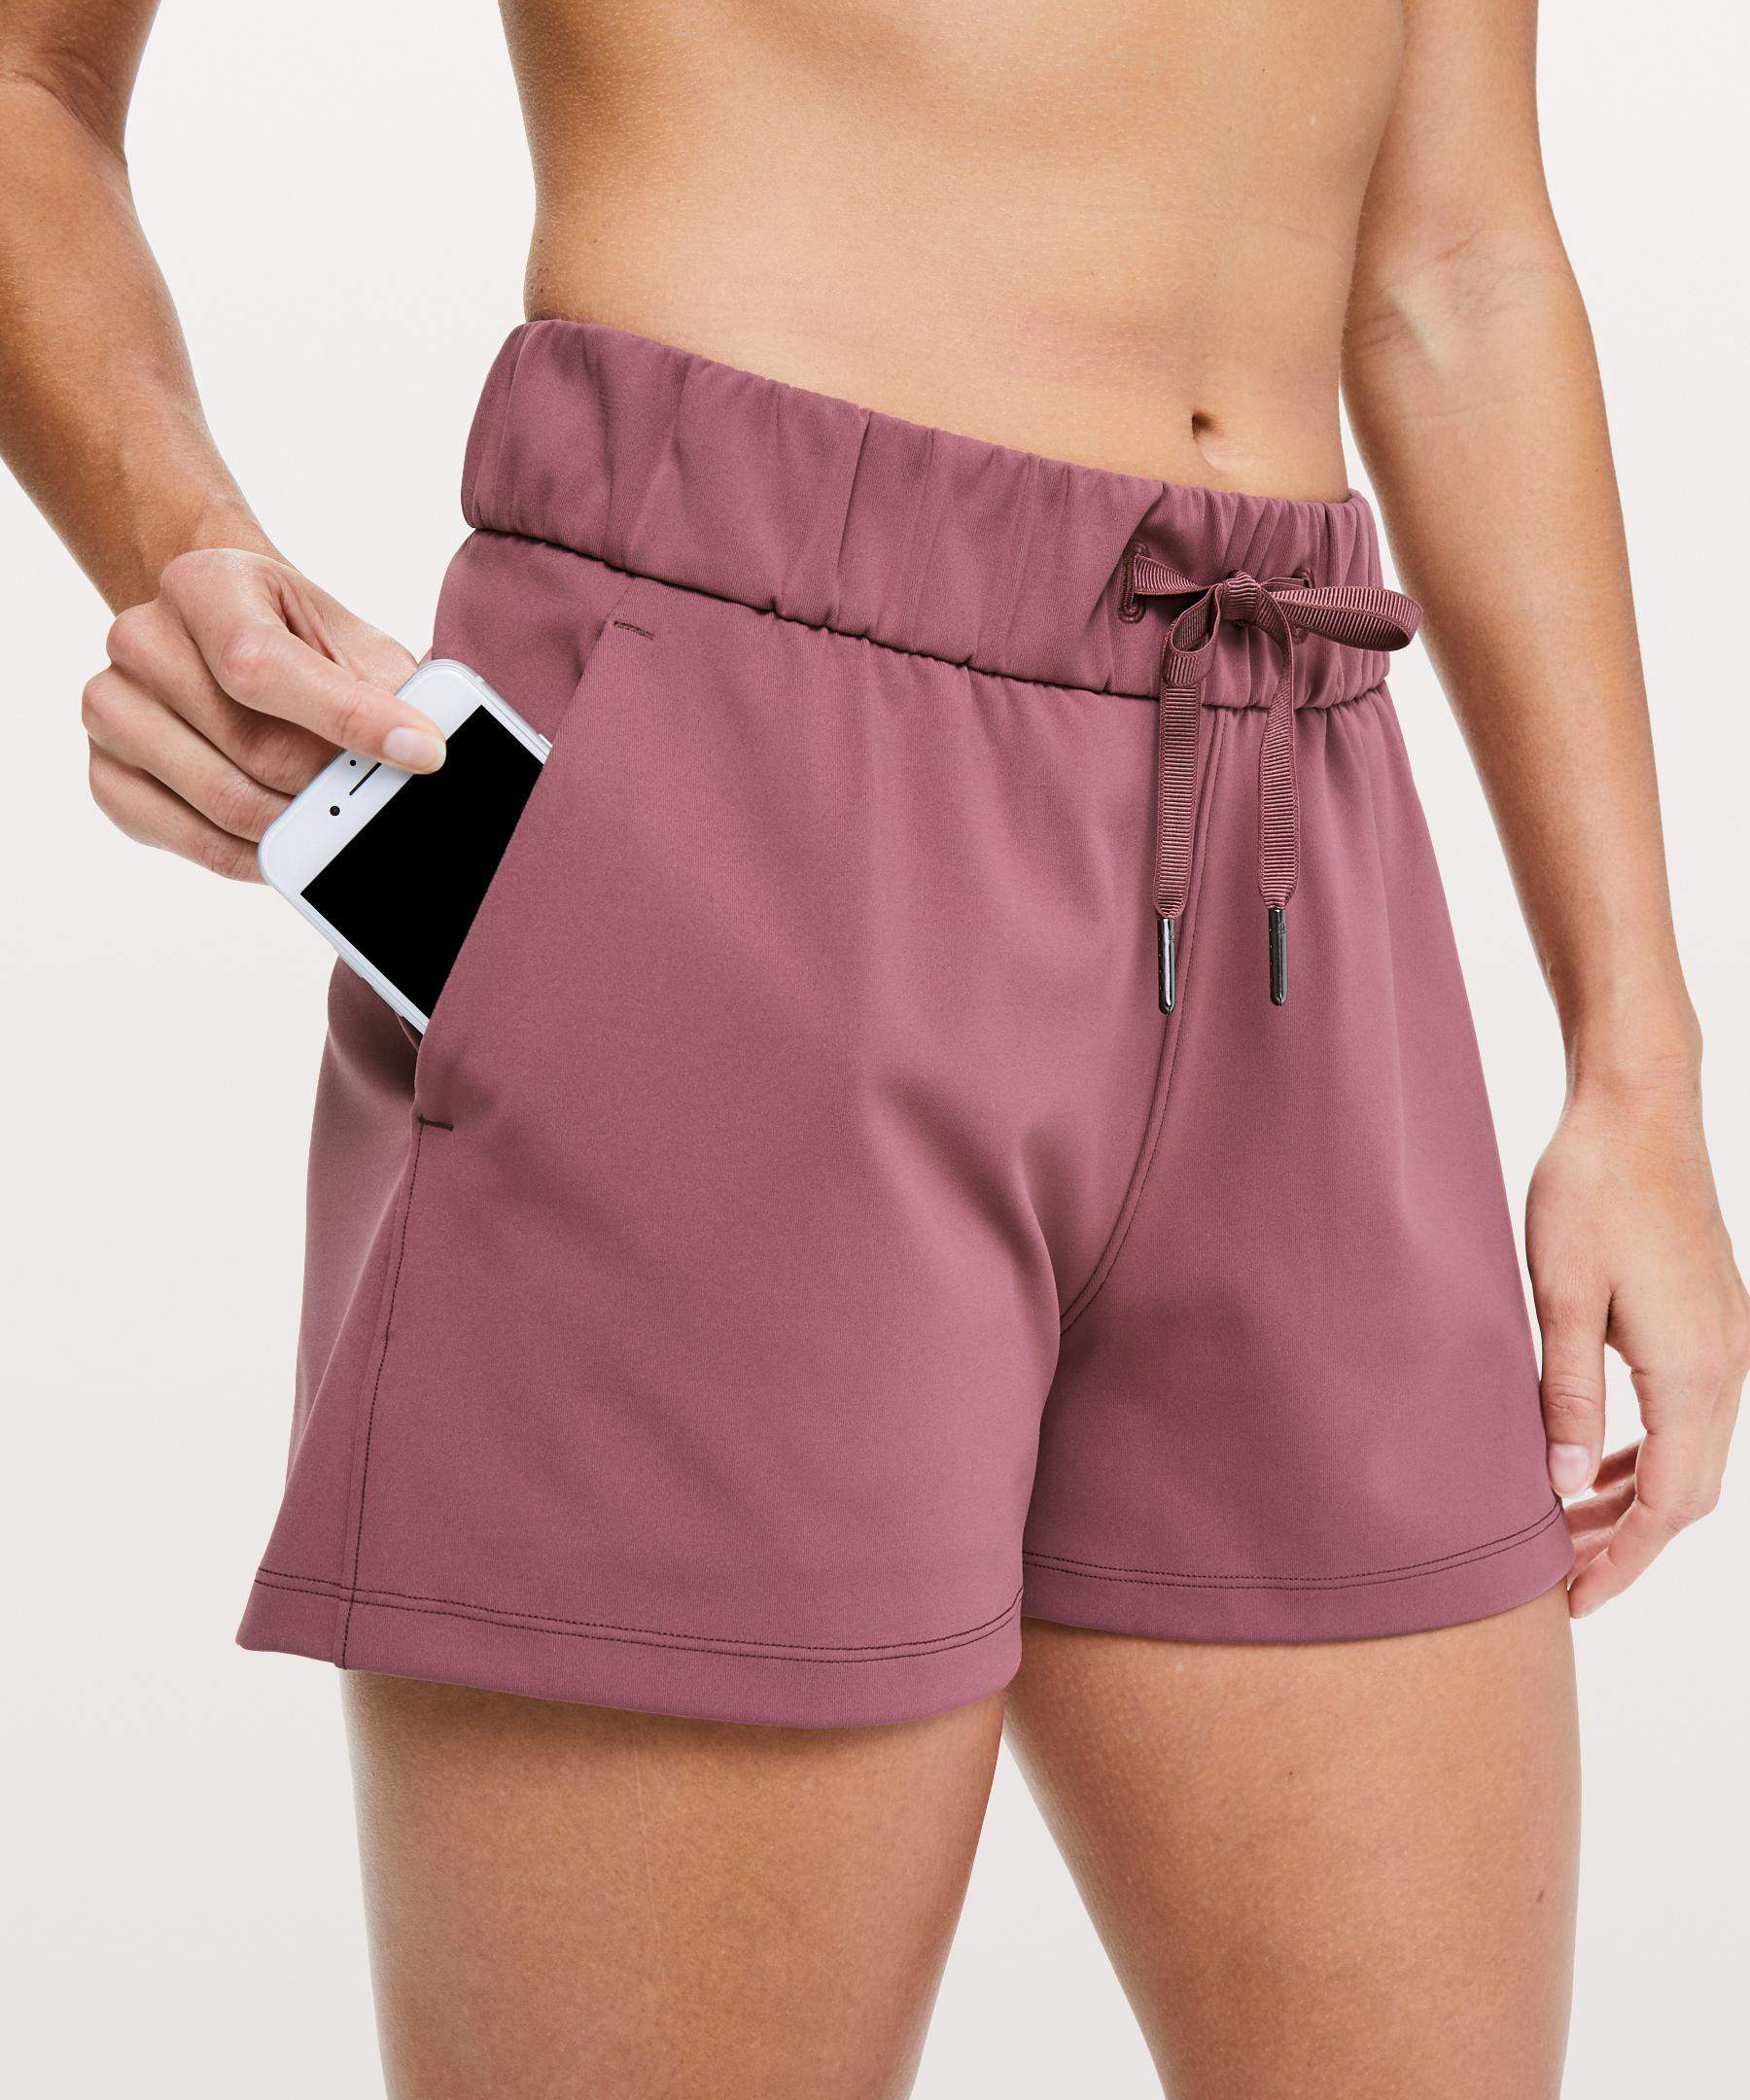 6e83105bf lululemon athletica On The Fly Short  2.5